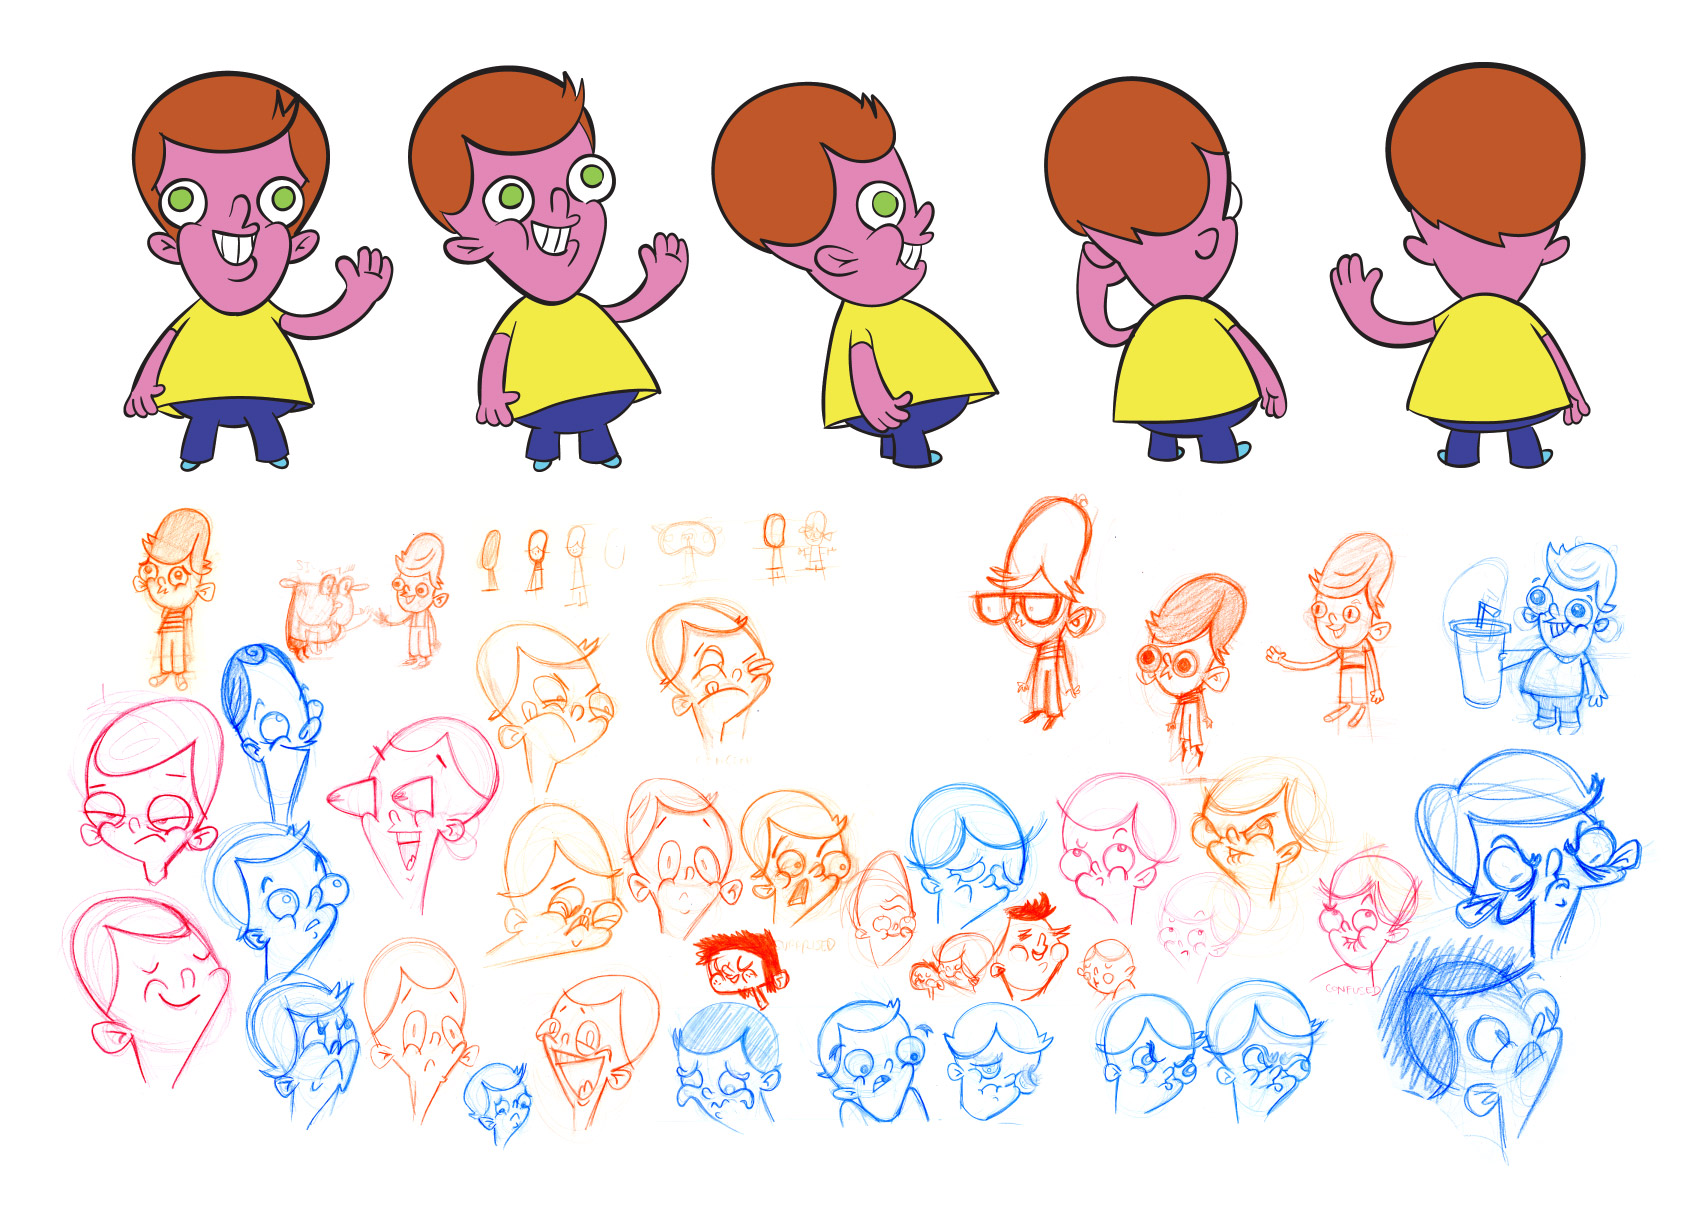 boy_character_turn_and_development_sketches